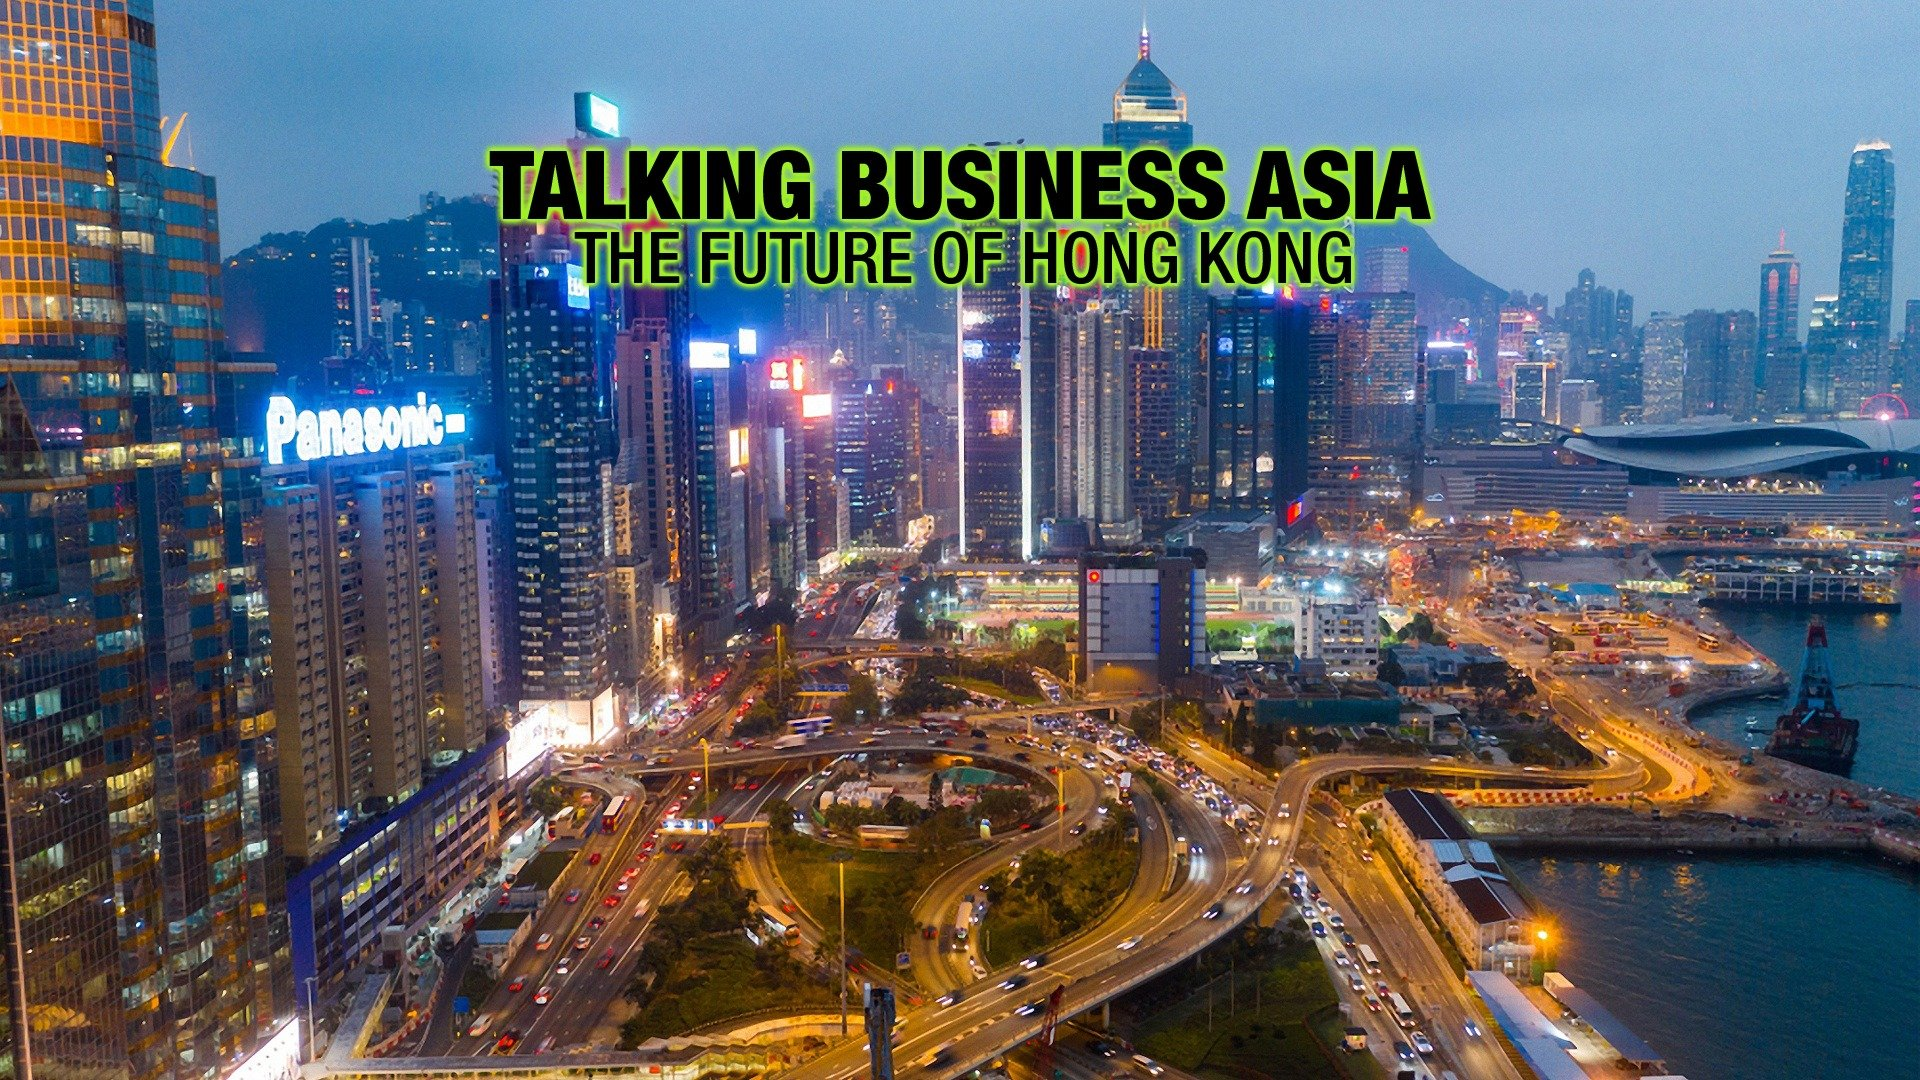 Talking Business Asia: The Future of Hong Kong